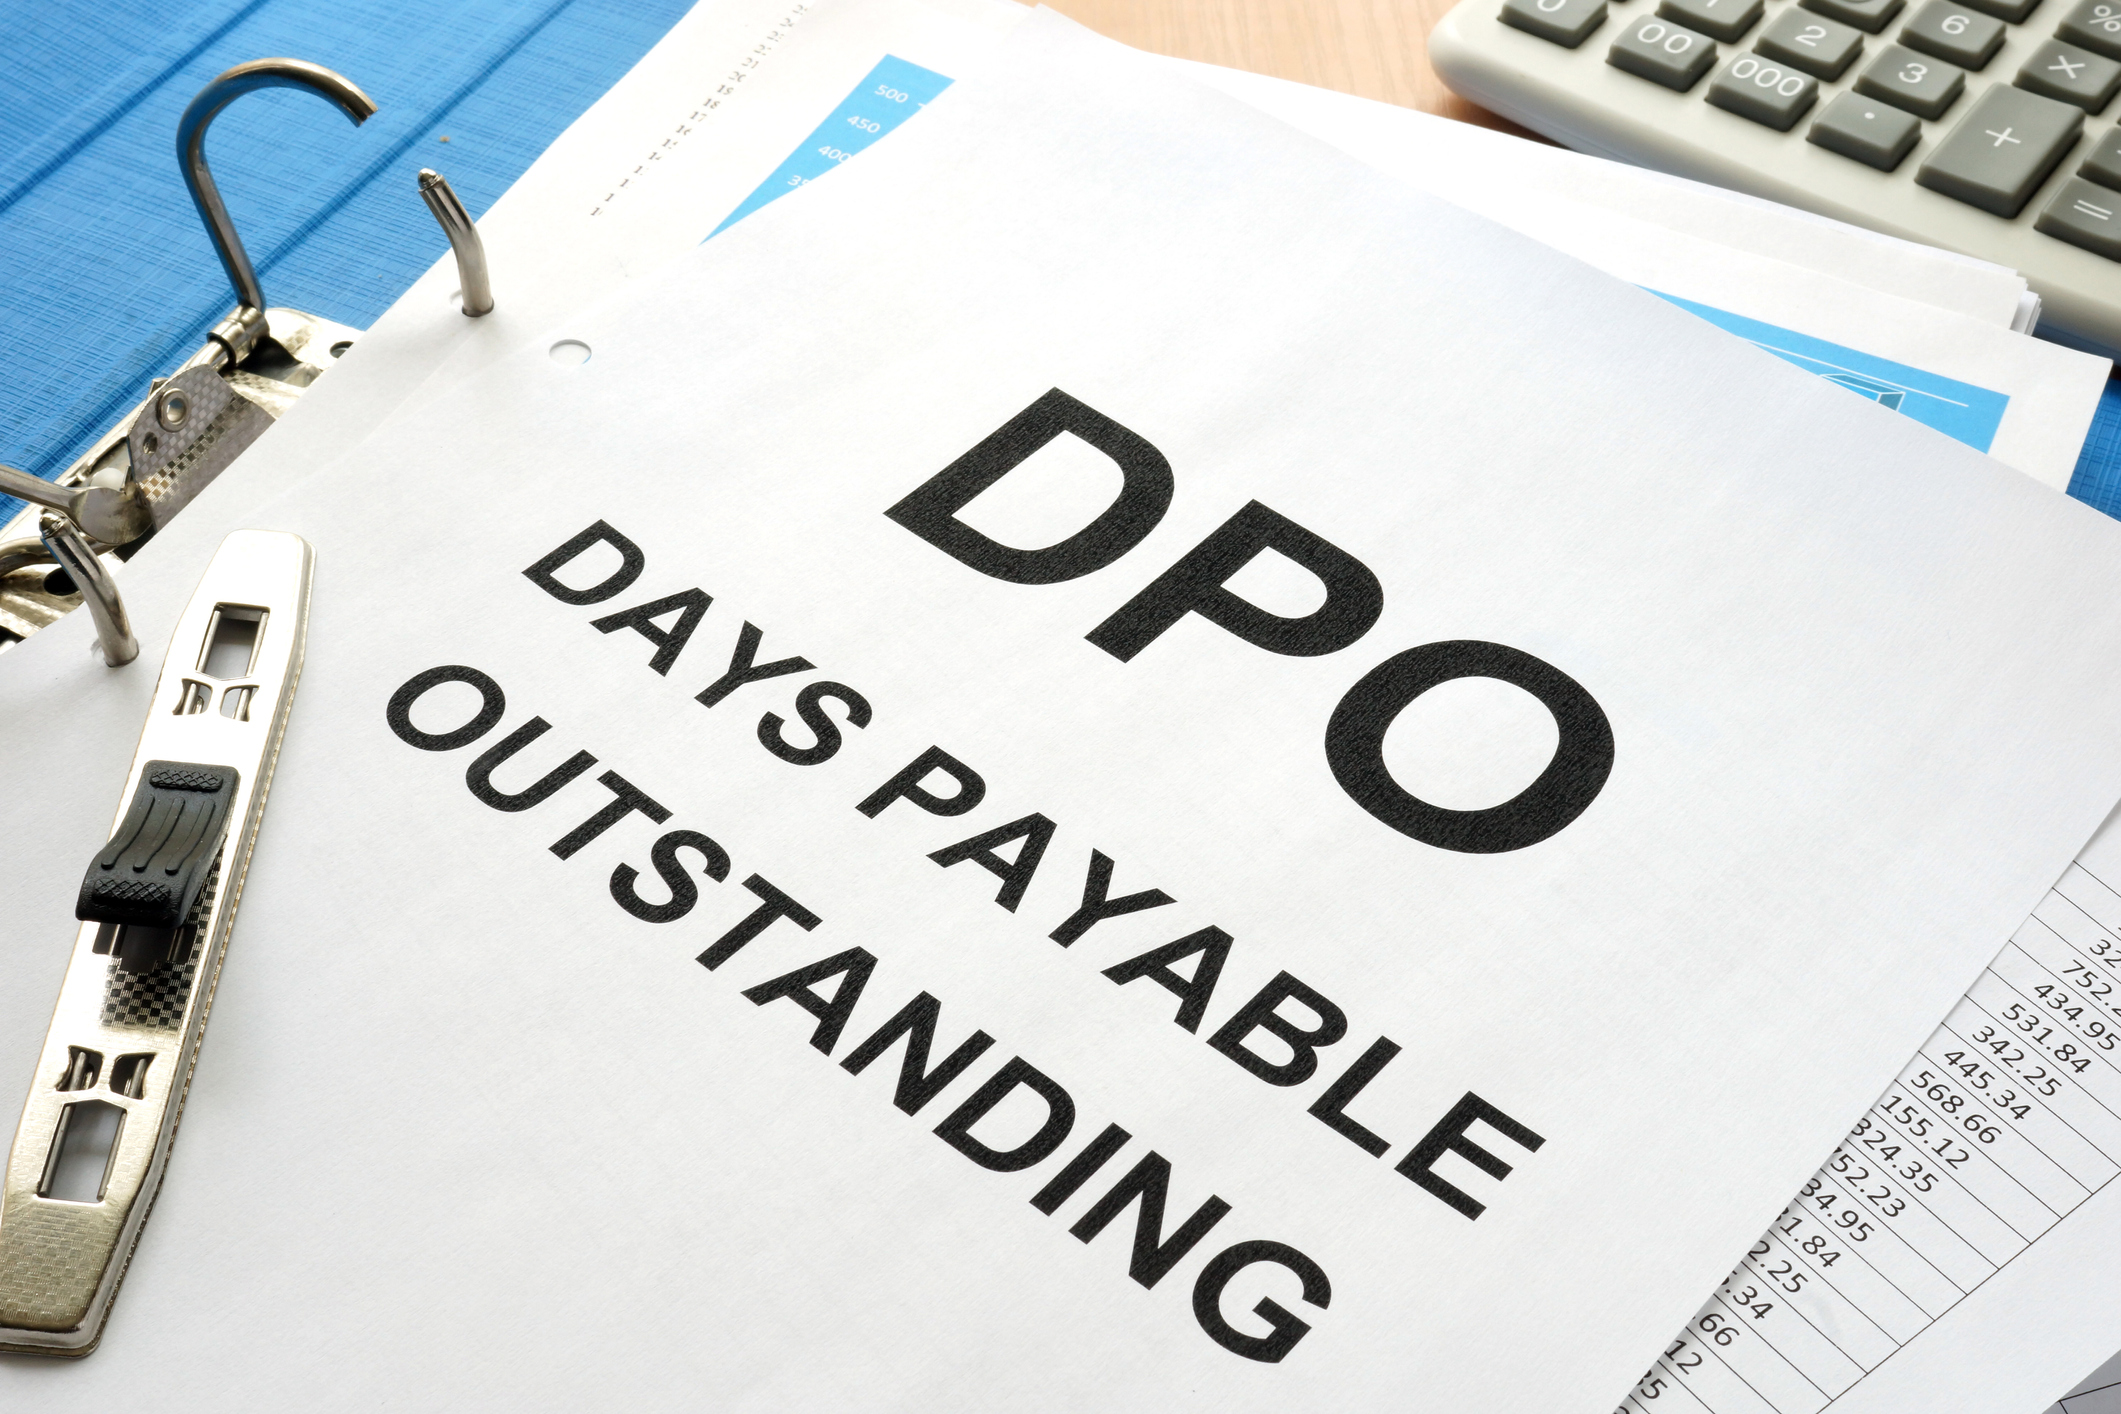 Day Sales Payable is critical part of cash flow management. Here are the details.